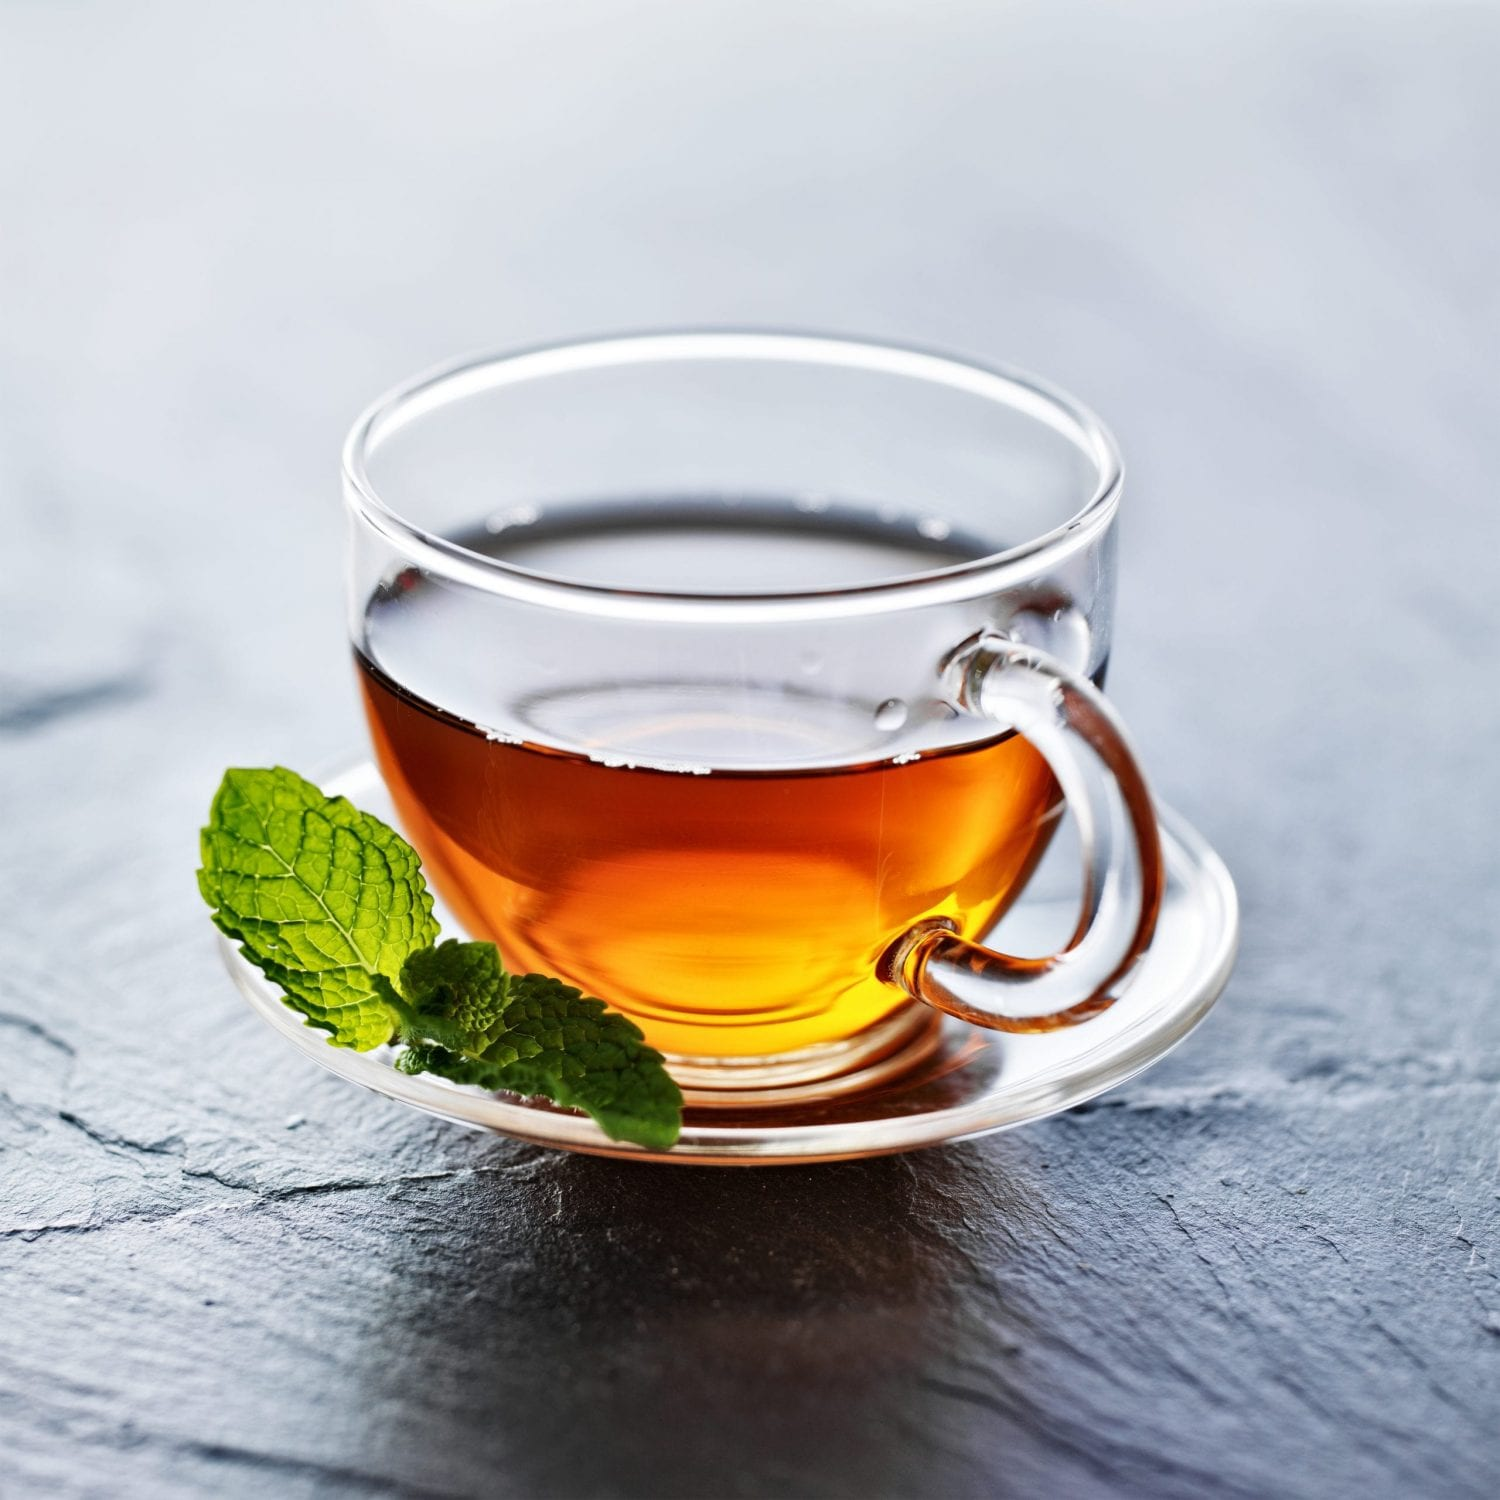 "Glass of hot weed tea with mint garnish ""src ="" https://www.thecannaschool.ca/wp-content/uploads/2020/06/Canva-Hot-Tea--scaled.jpg?bf30a4&bf30a4 ""data- class = ""Appendix-700x9999 size-700x9999 Lazyload"" /> <img style="